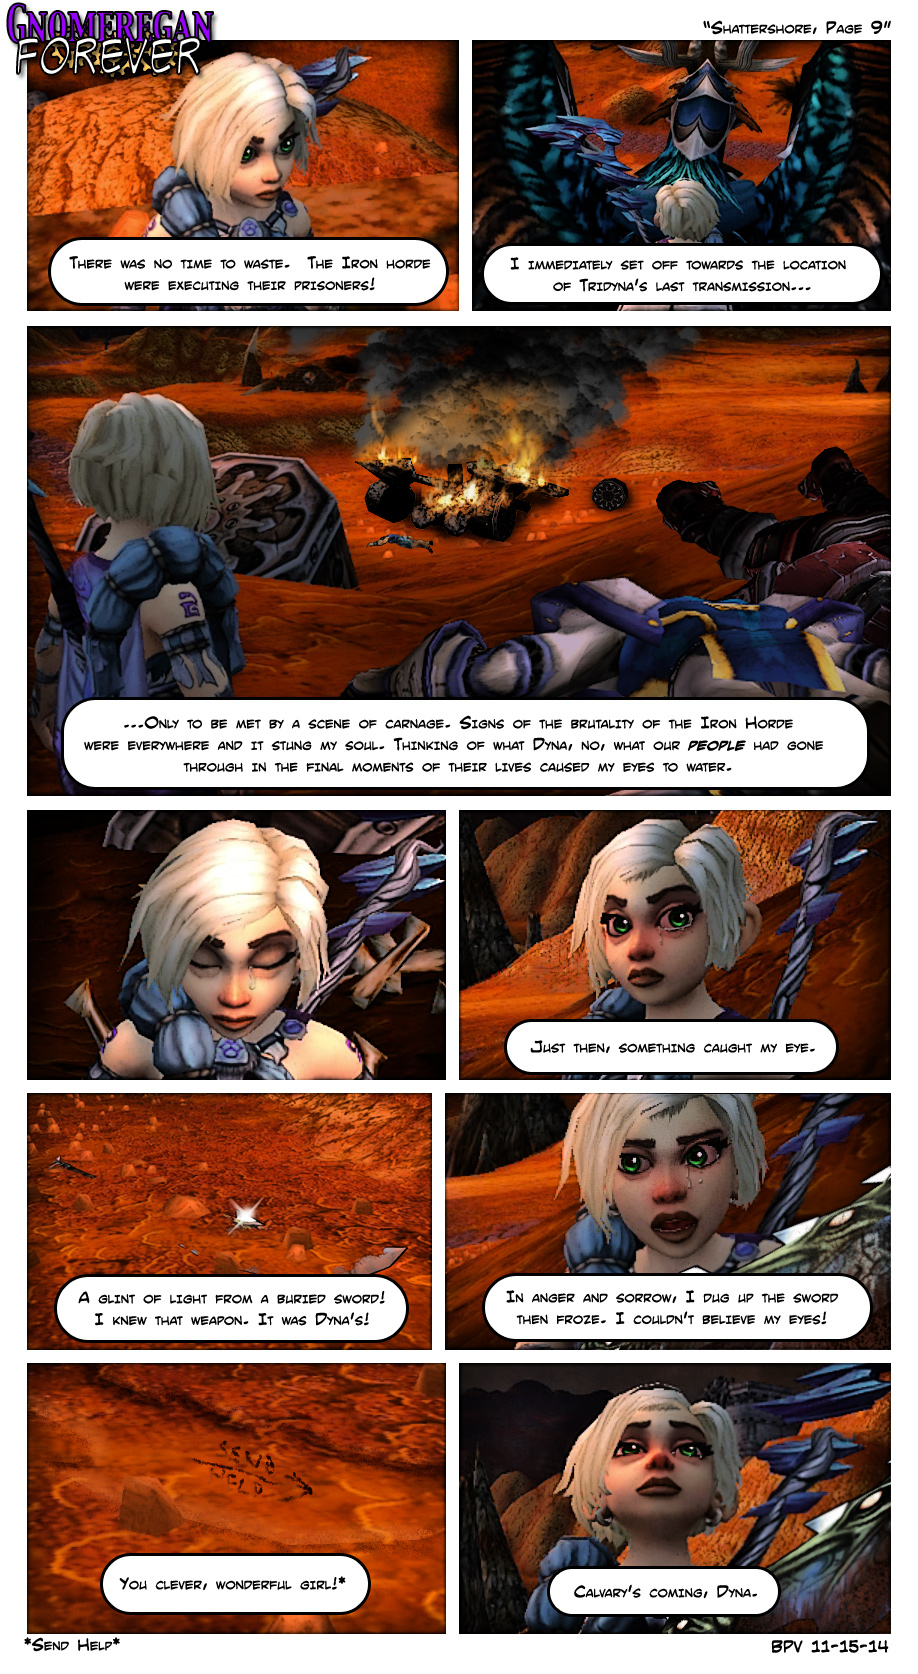 Shattershore, Page 9